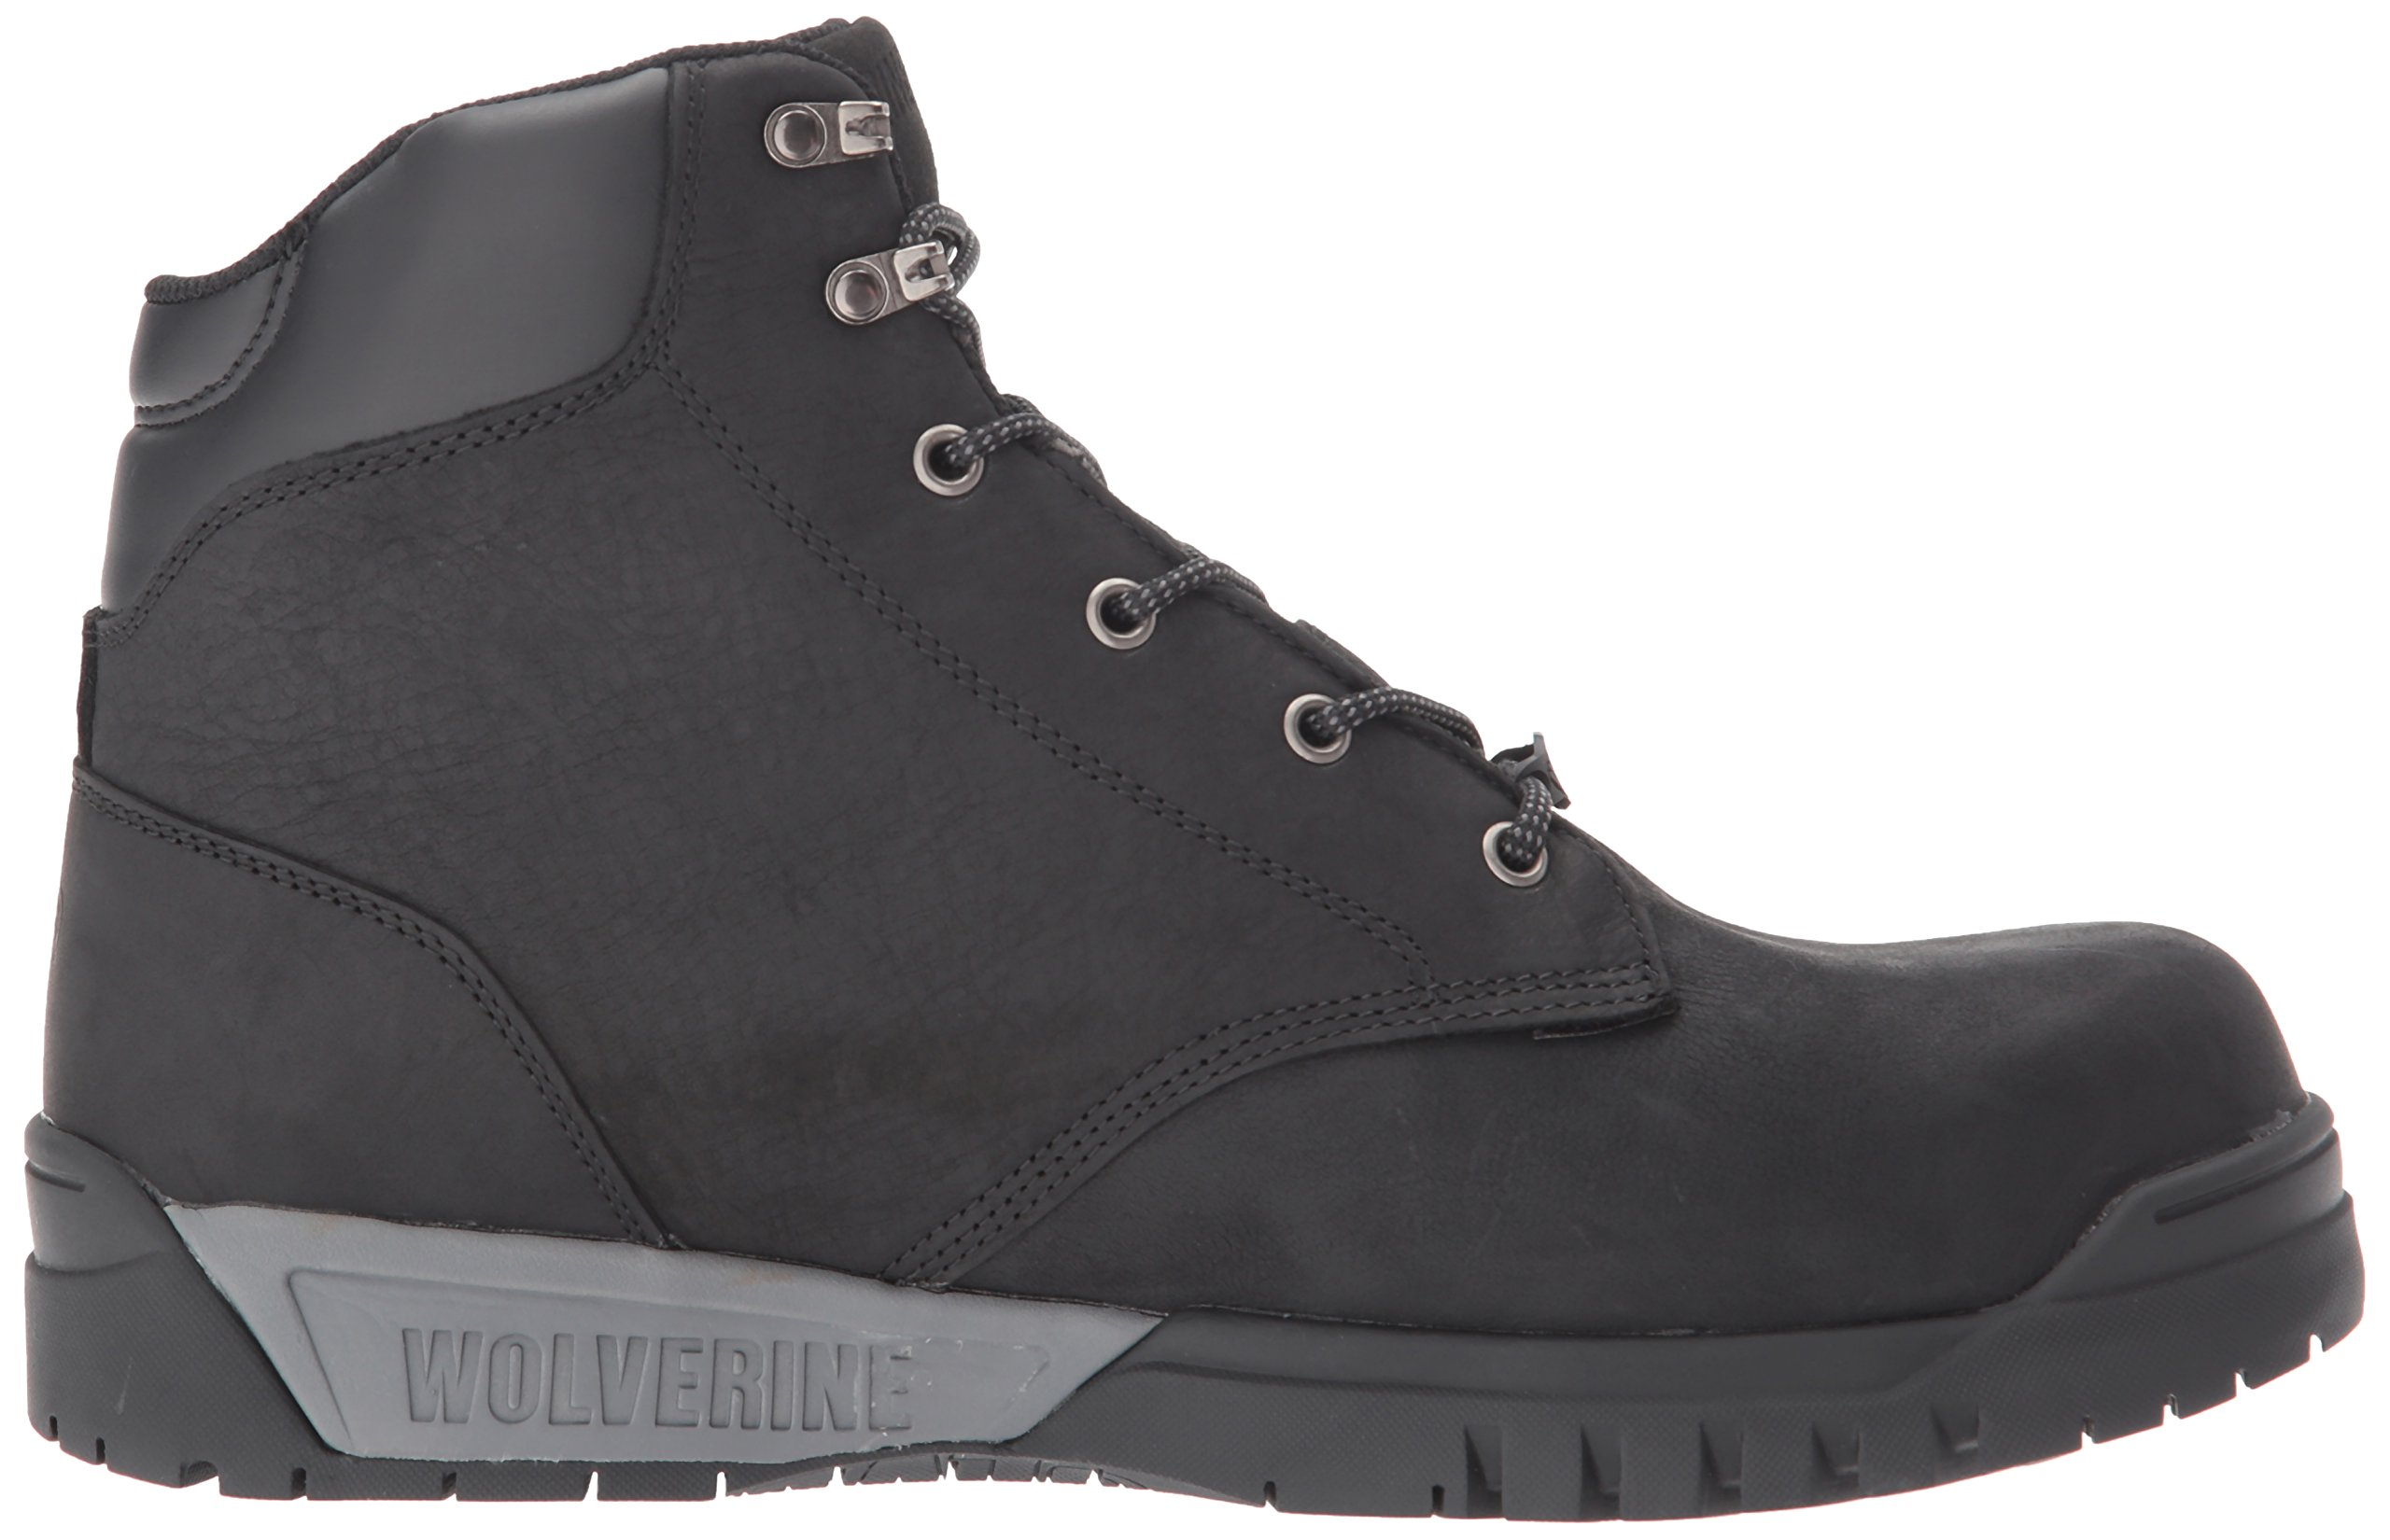 Wolverine Men's Mauler LX Composite Toe Waterproof Work Boot Black 7 W US by Wolverine (Image #7)